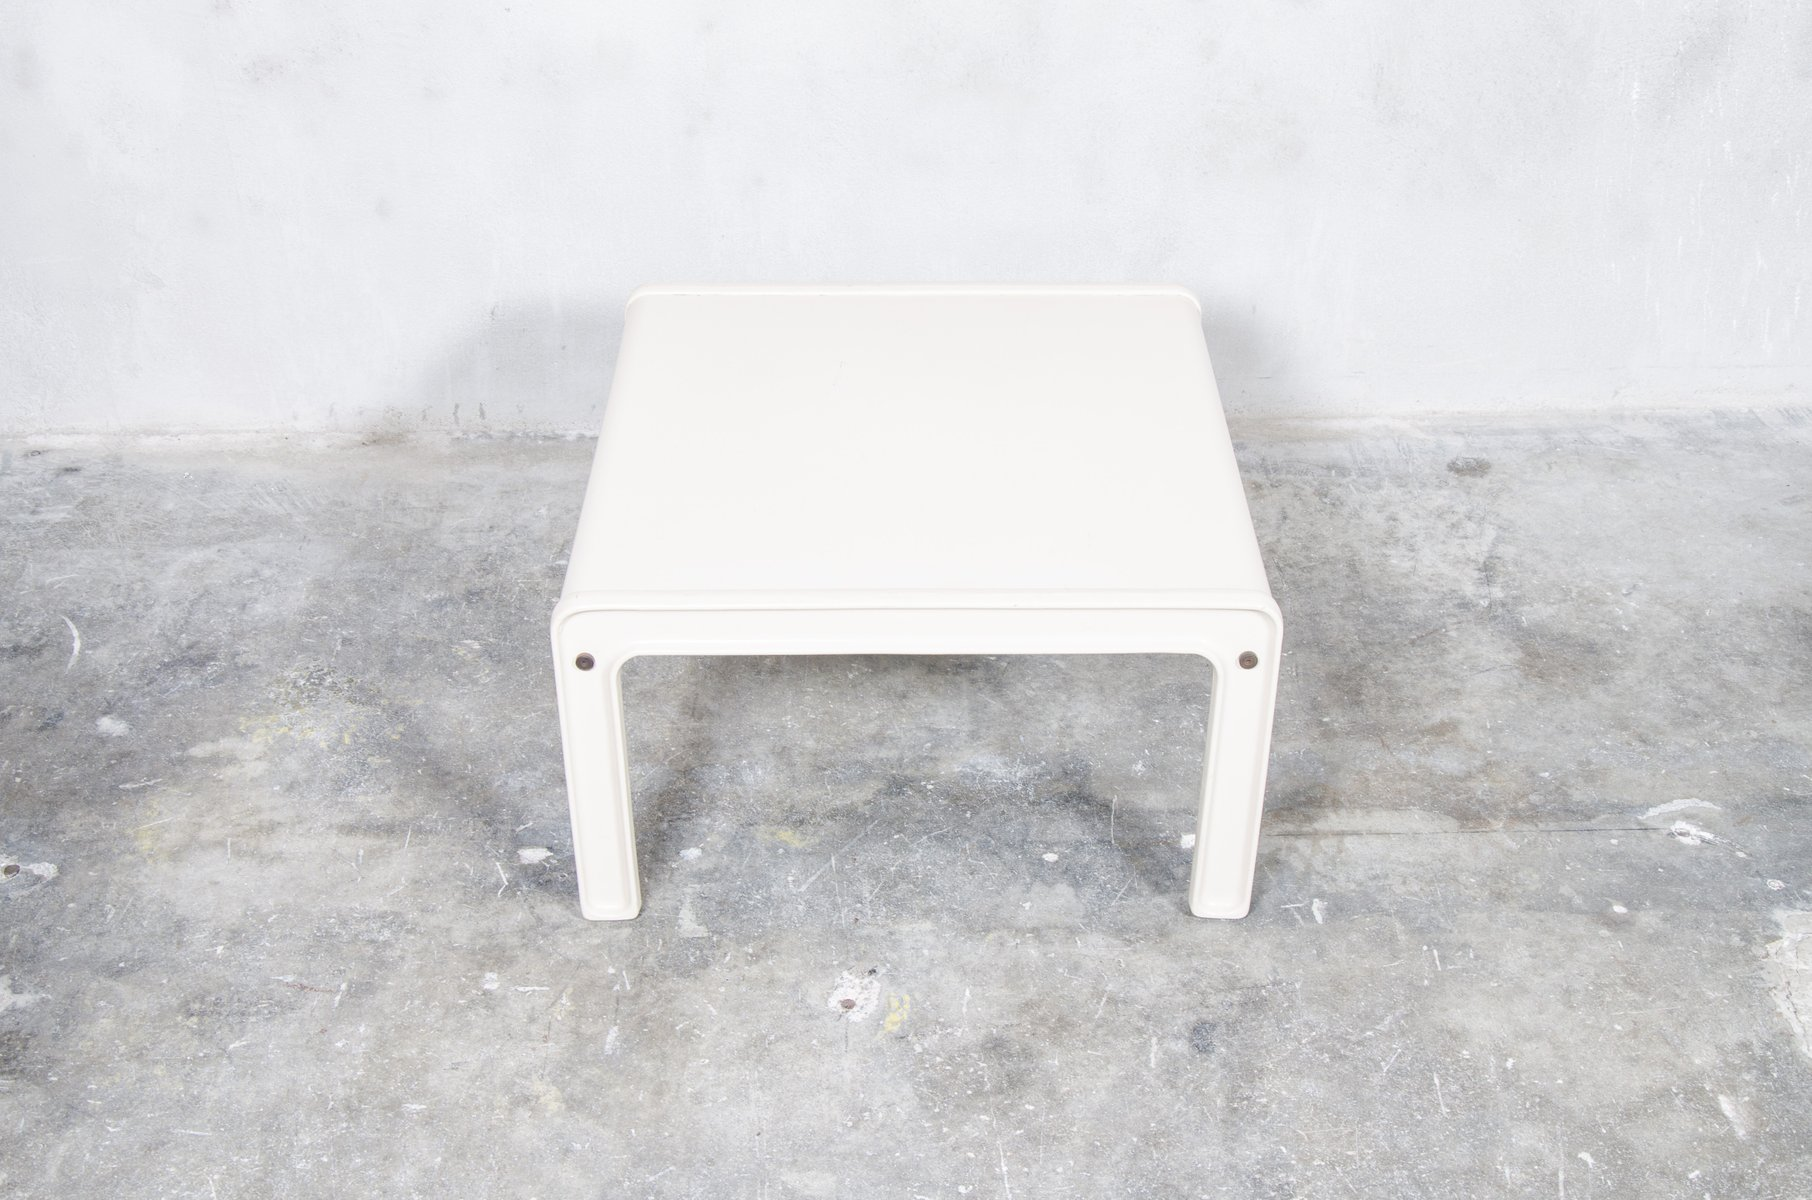 Outstanding Coffee Table By Kho Liang Li And Just Meijer For Kembo 1970S Forskolin Free Trial Chair Design Images Forskolin Free Trialorg